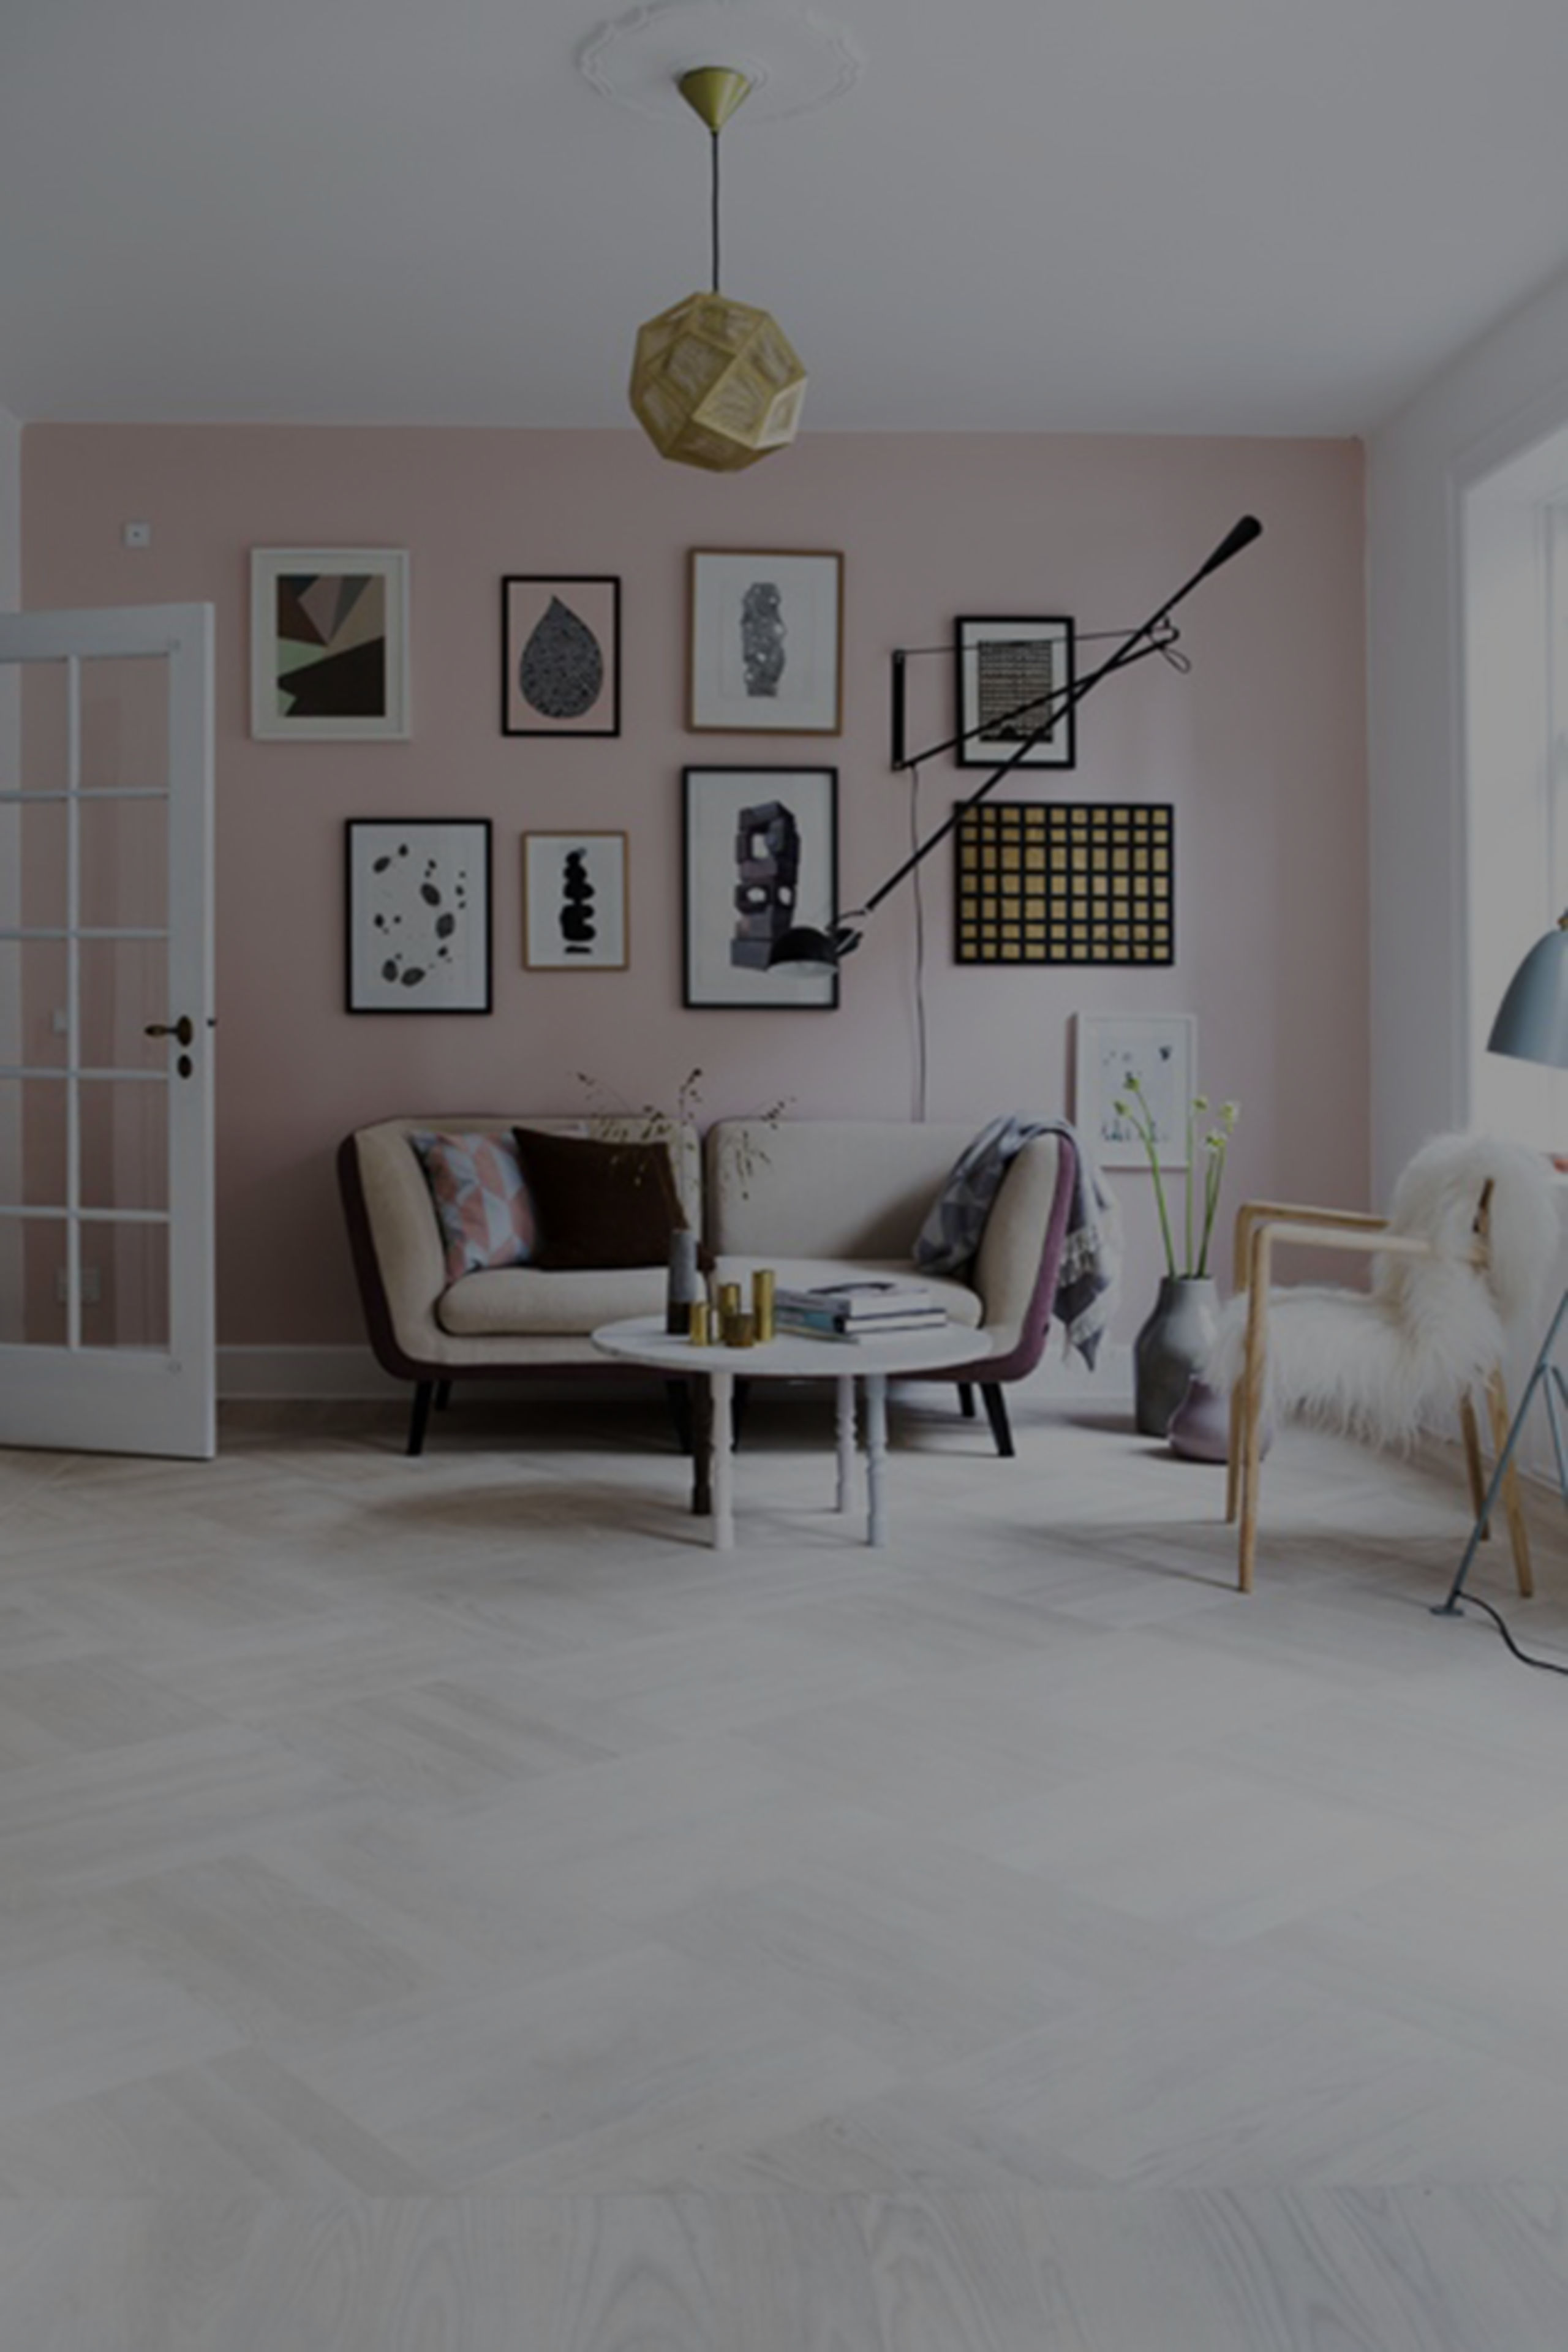 How to pick a color palette for your house